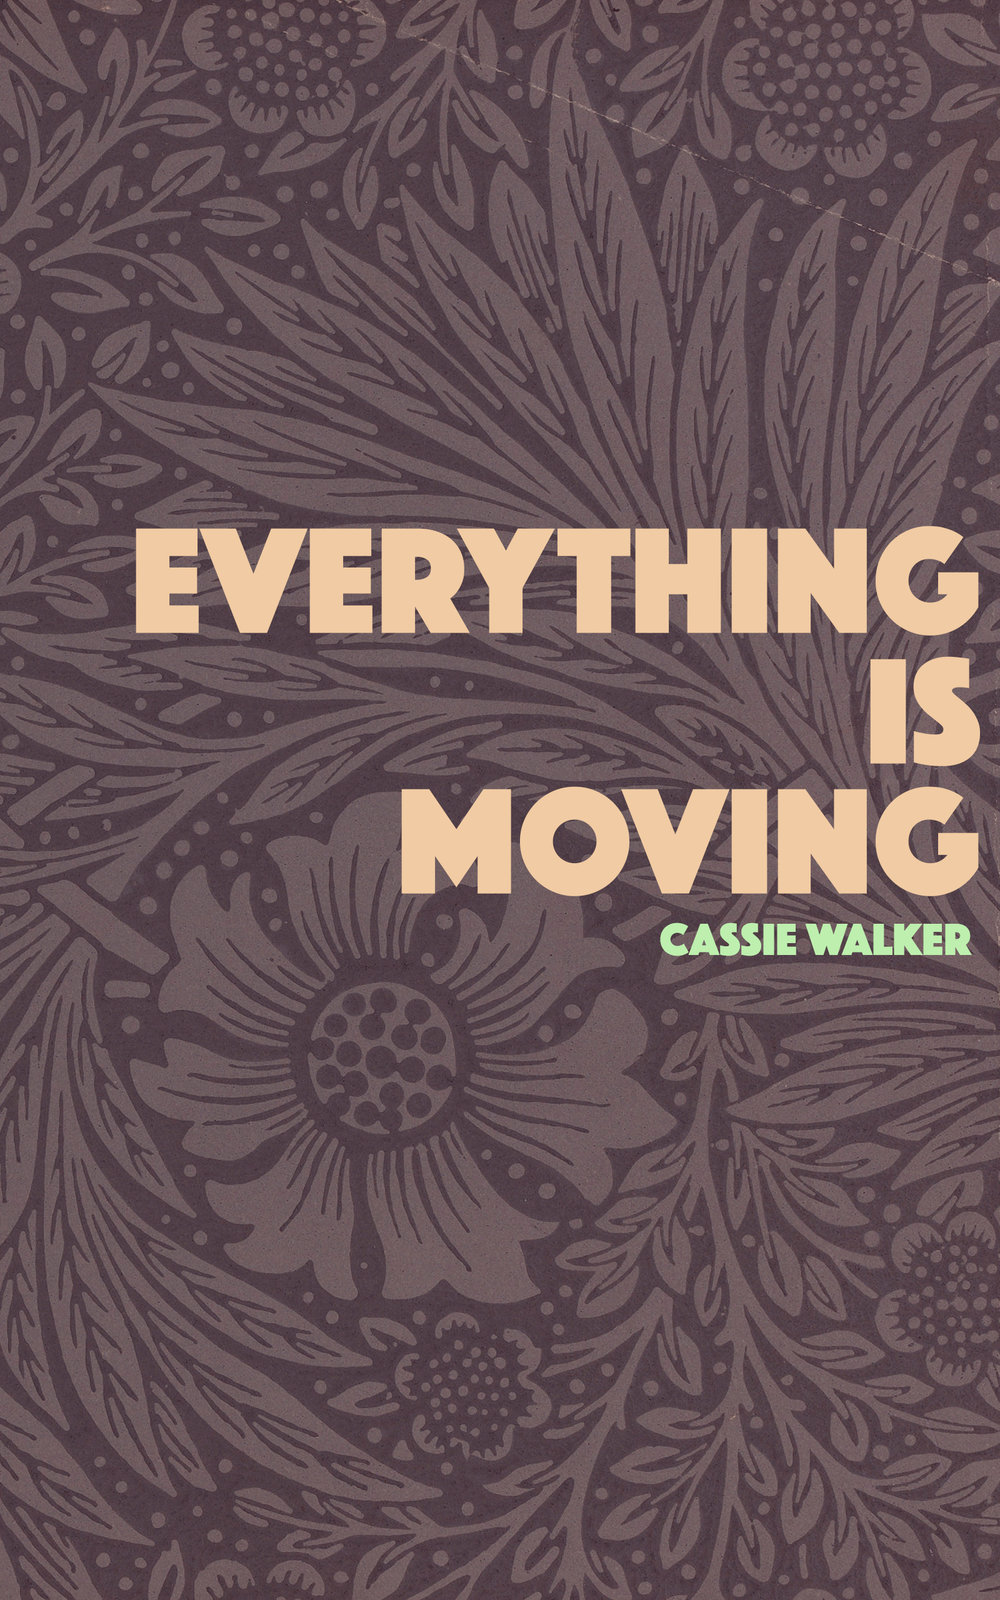 CASSIE'S BOOK - BUY NOW ON AMAZON | LINKThe year was 2011… Jon had just left the band(s). Seeking refuge from an overwhelming society, Cassie and Jon rid themselves of all non-essential possessions, and relocated to the edge of the earth with their dog and two cats. Everything Is Moving, the debut narrative from Cassie Walker, chronicles the experience of trying to live consciously while being out of one's element, and quite possibly, out of one's mind. Travel into the depths of the jungle, through time, and within Cassie's imagination to wonder about love, work, and coming of age in the 21st Century.For more information, including a photo gallery, visit Cassie's website:CASSIEWALKERMINDBODY.COM